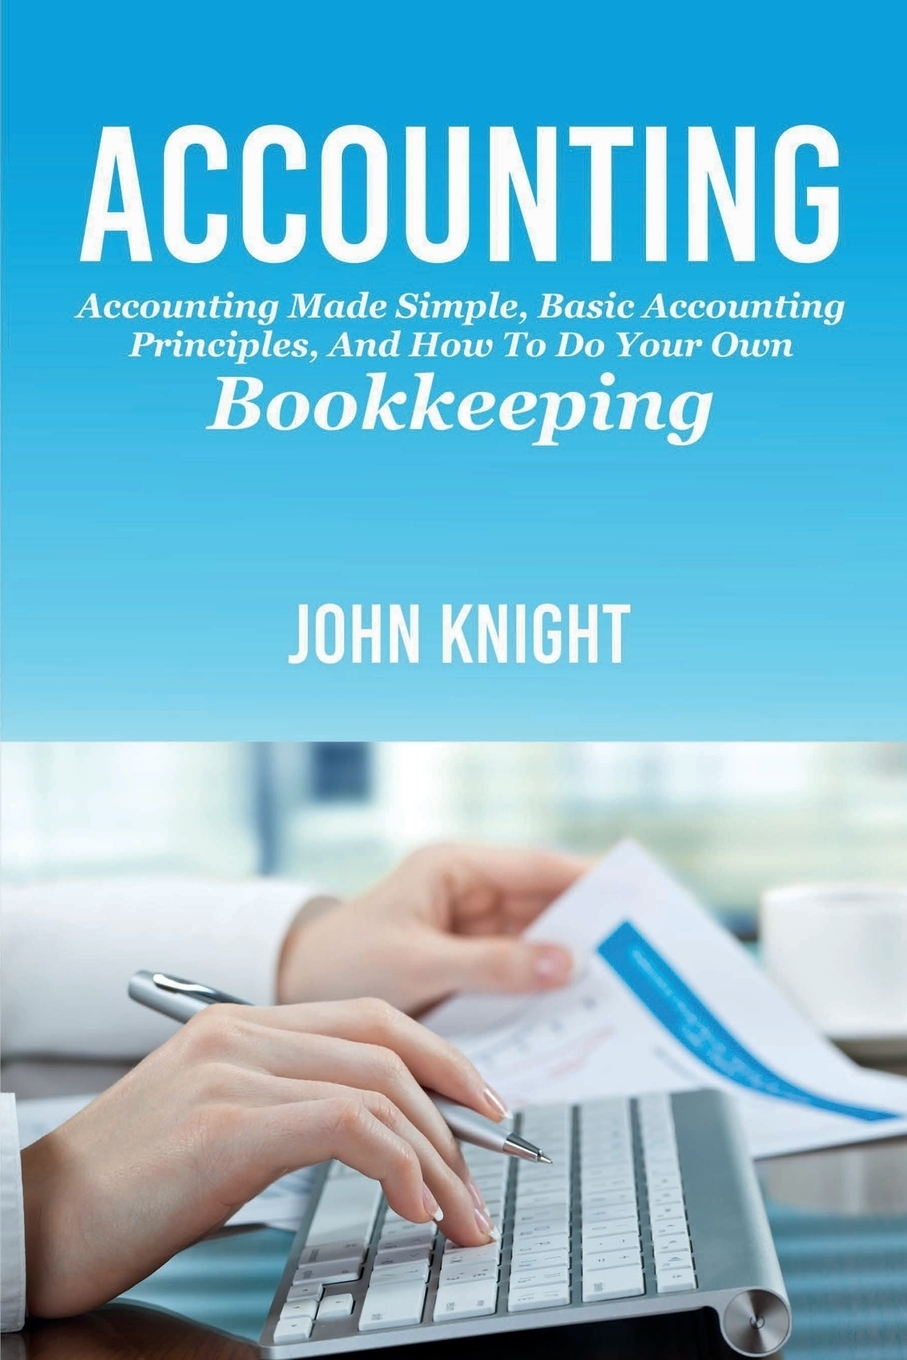 John Knight. Accounting. Accounting made simple, basic accounting principles, and how to do your own bookkeeping